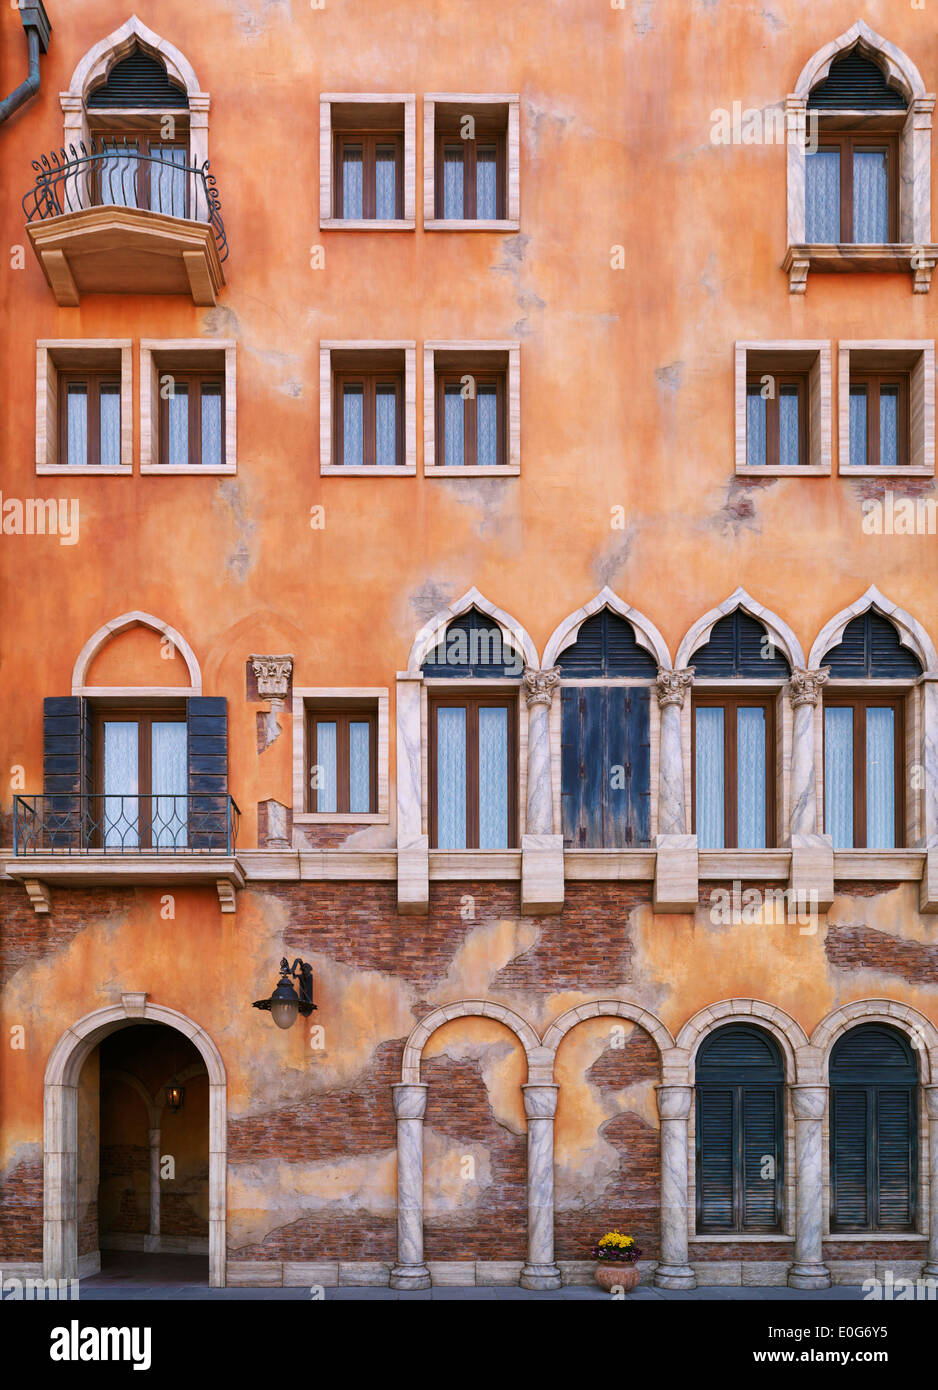 Wall With Windows Of A Building In Venetian Gothic